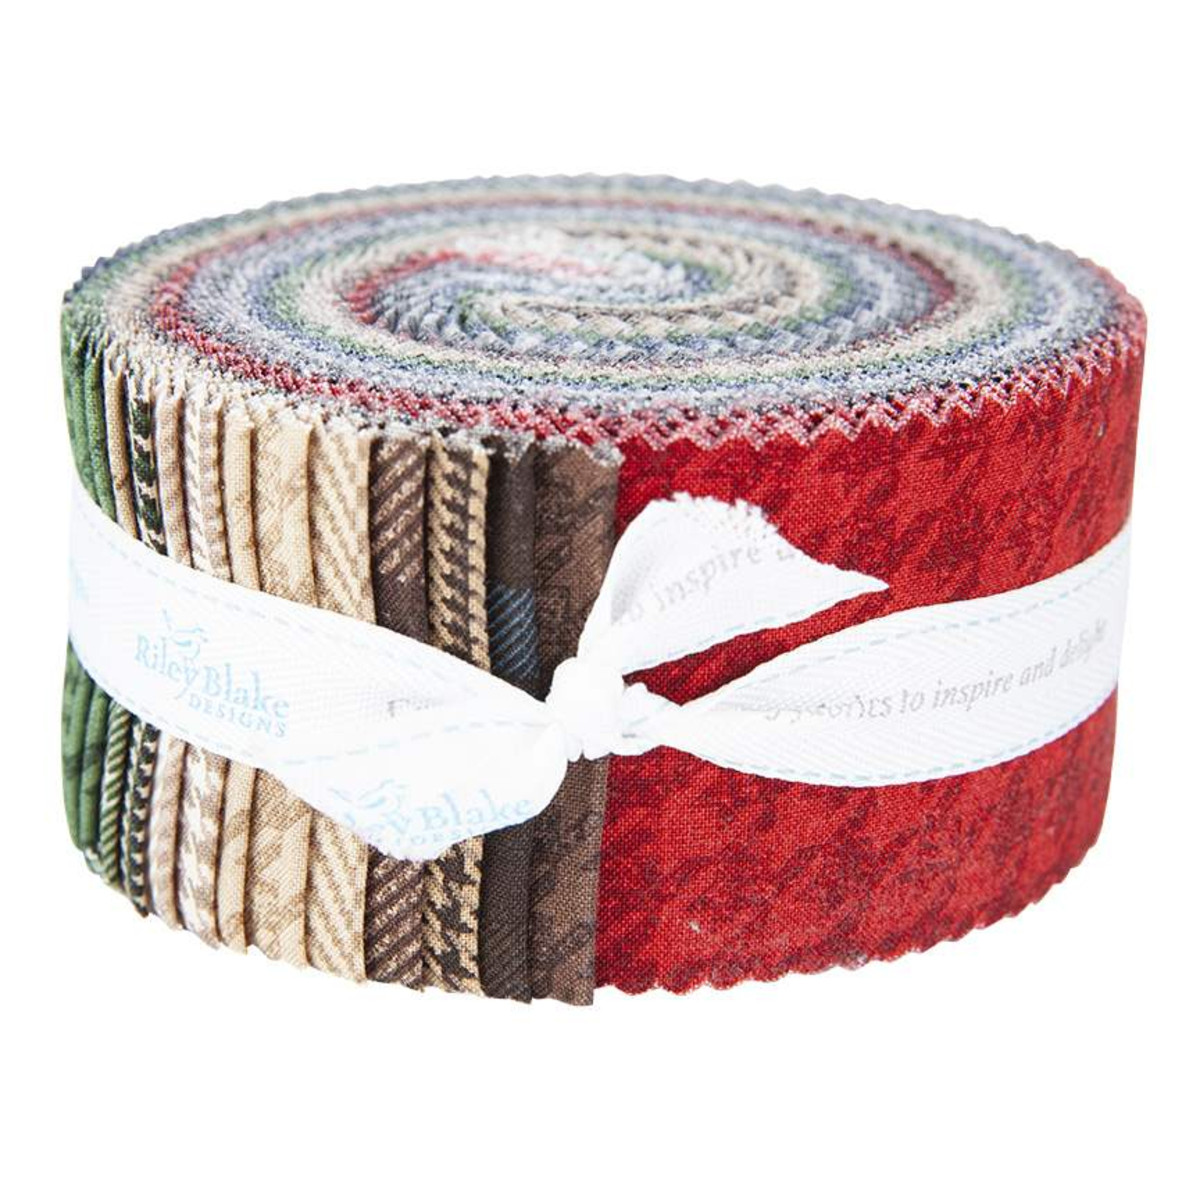 Riley Blake Jelly Roll - All About Plaids by J Wecker Frisch